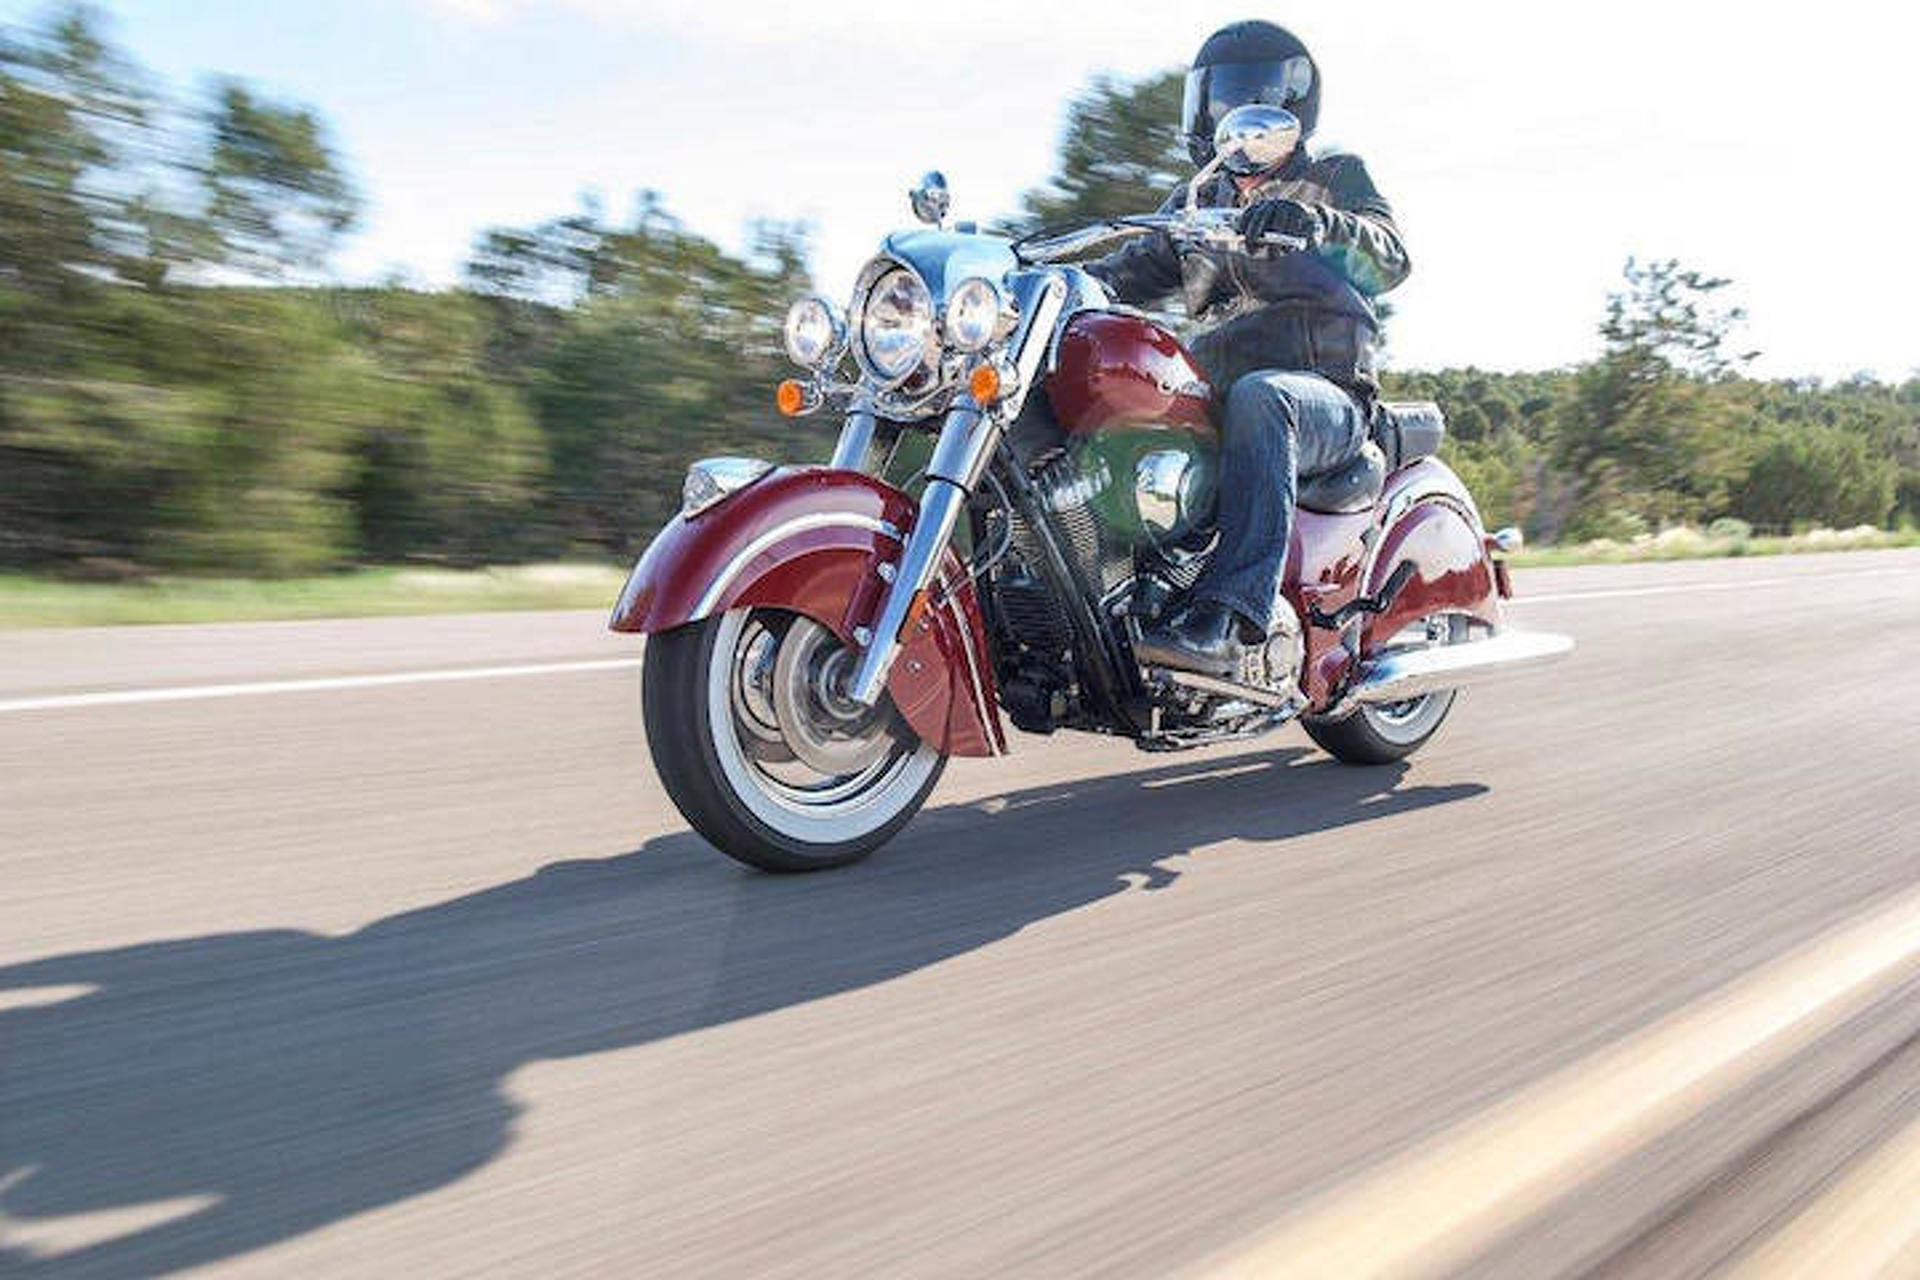 Ride Home on an Indian Chief Classic Courtesy of eBay Motors